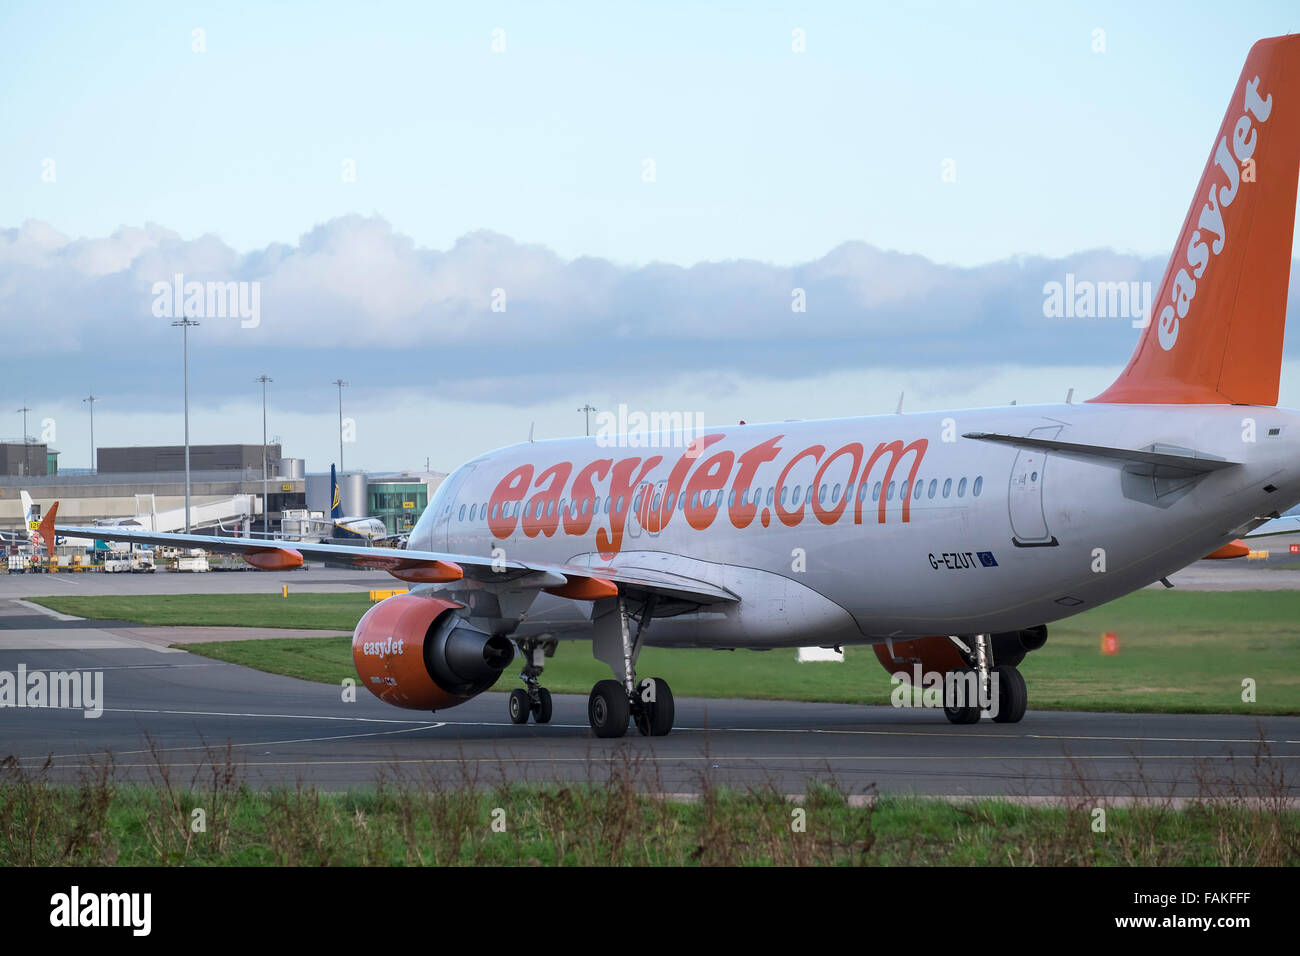 Easyjet Passenger plane getting ready to depart from Manchester Airport - Stock Image